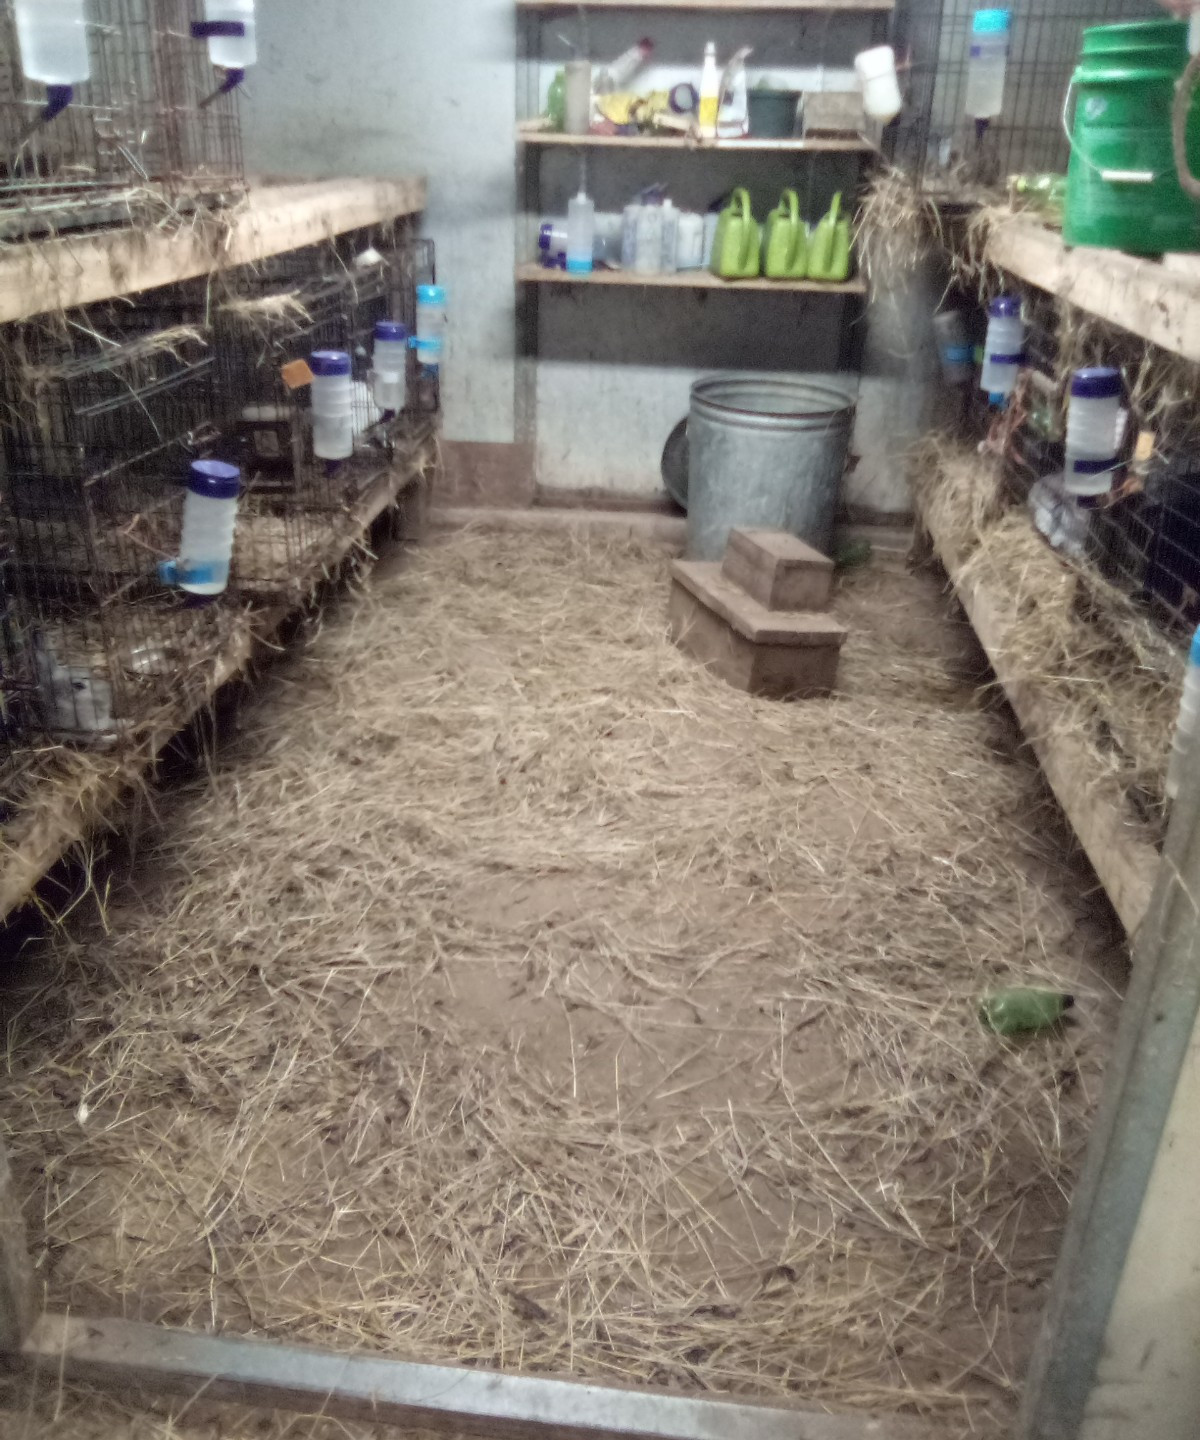 All bunny room unswept, hay everywhere and top to food left off